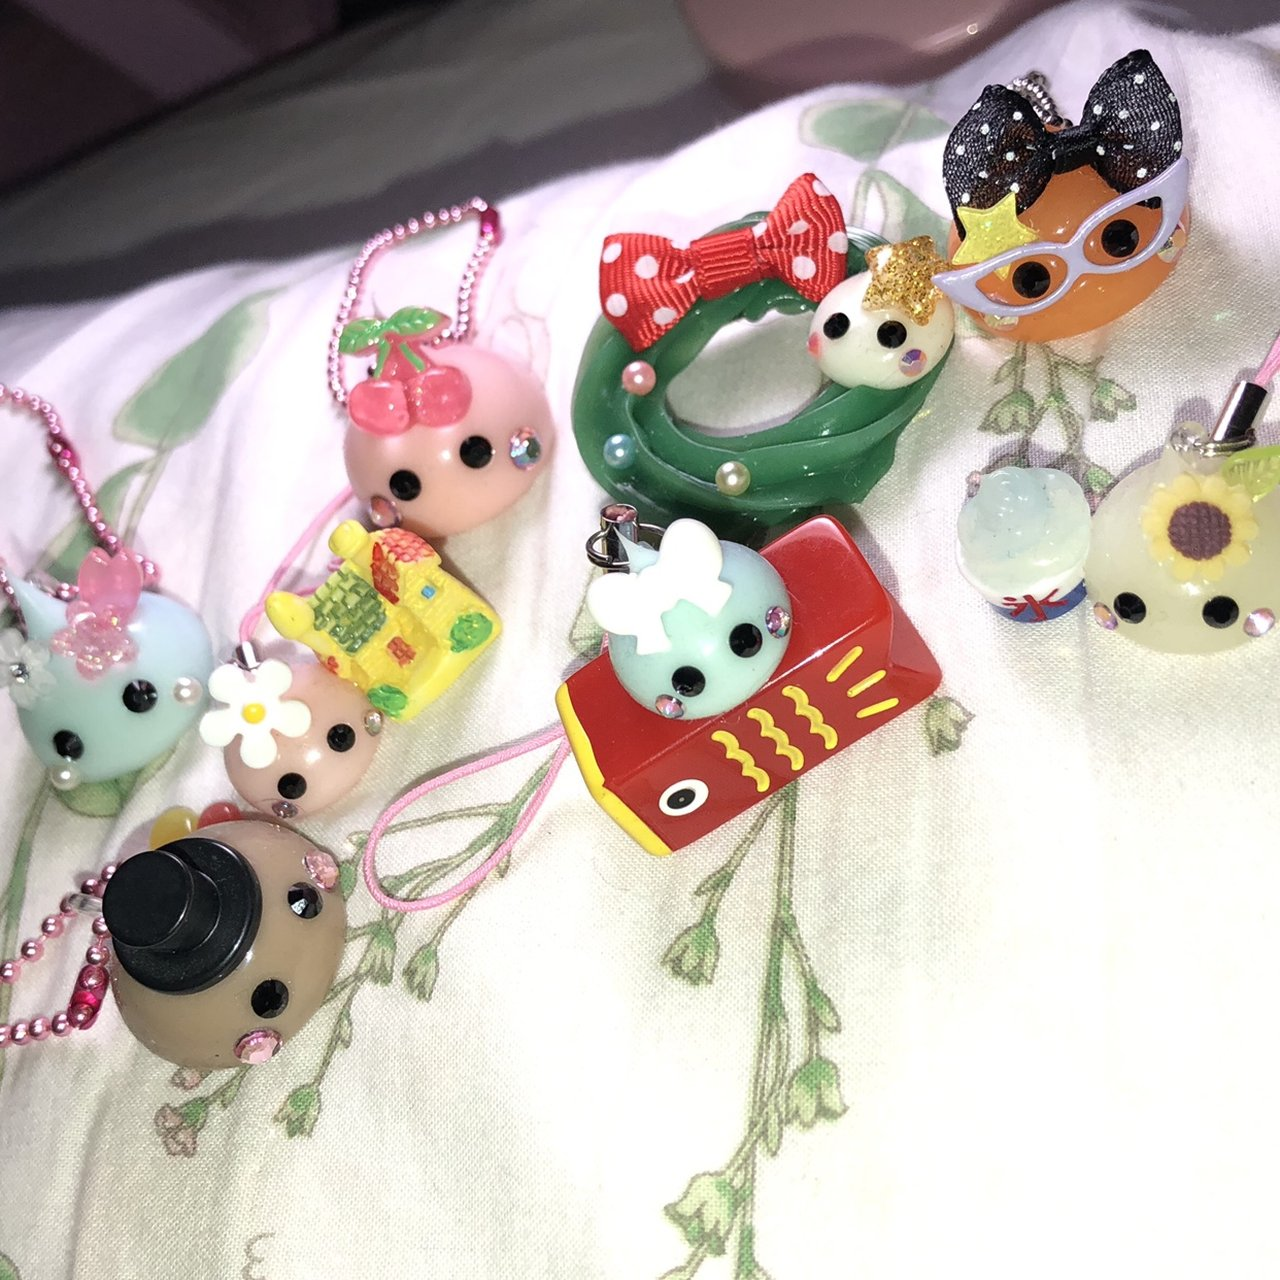 free shipping set of 9 hoppe chan keychains   phone of them - Depop beba71a0c14b